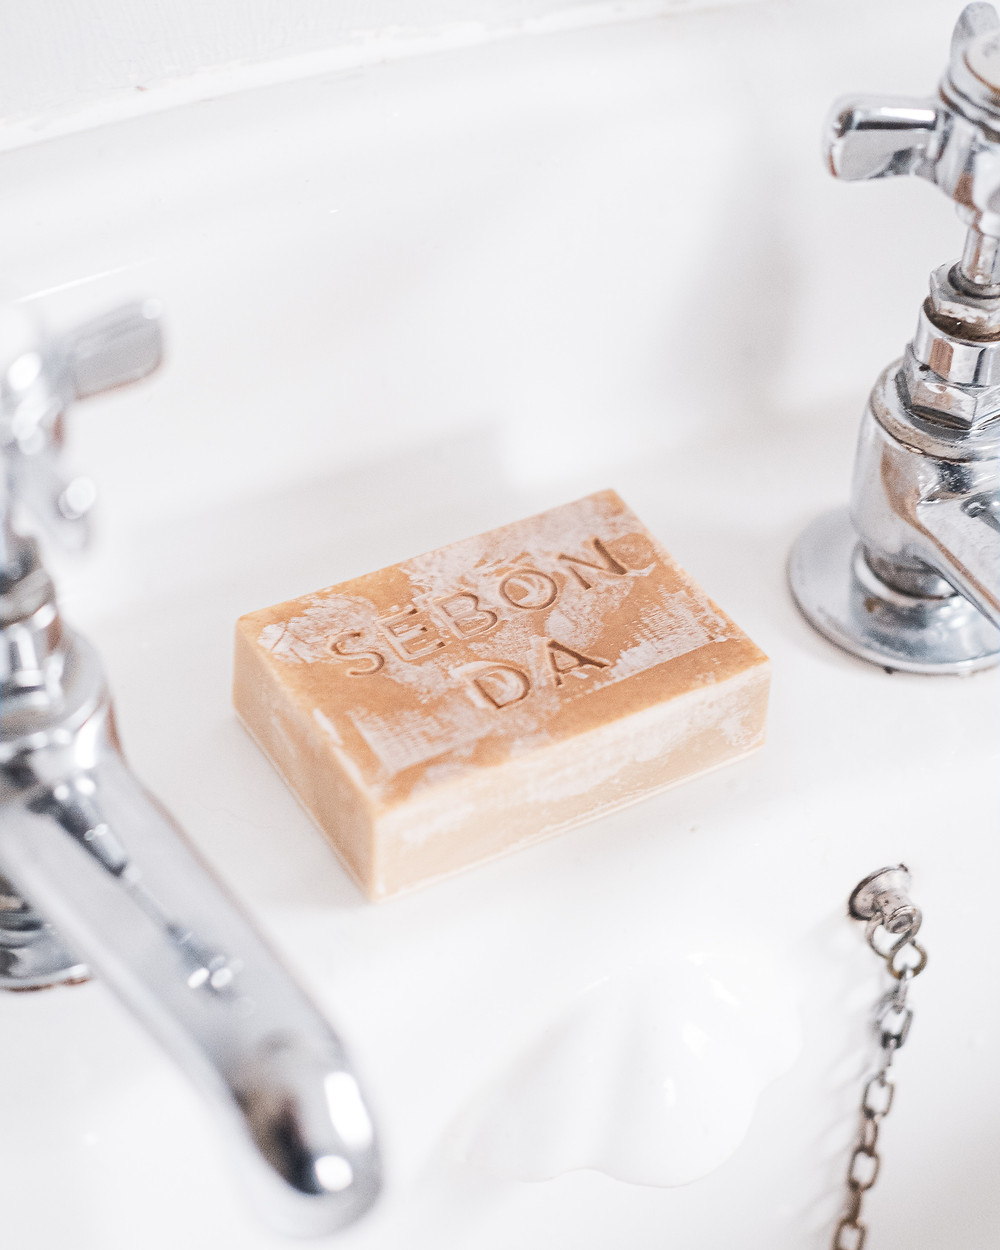 Goodwash Soap Bar based in Barry, Vale of Glamorgan. eco-friendly swap for plastic free July